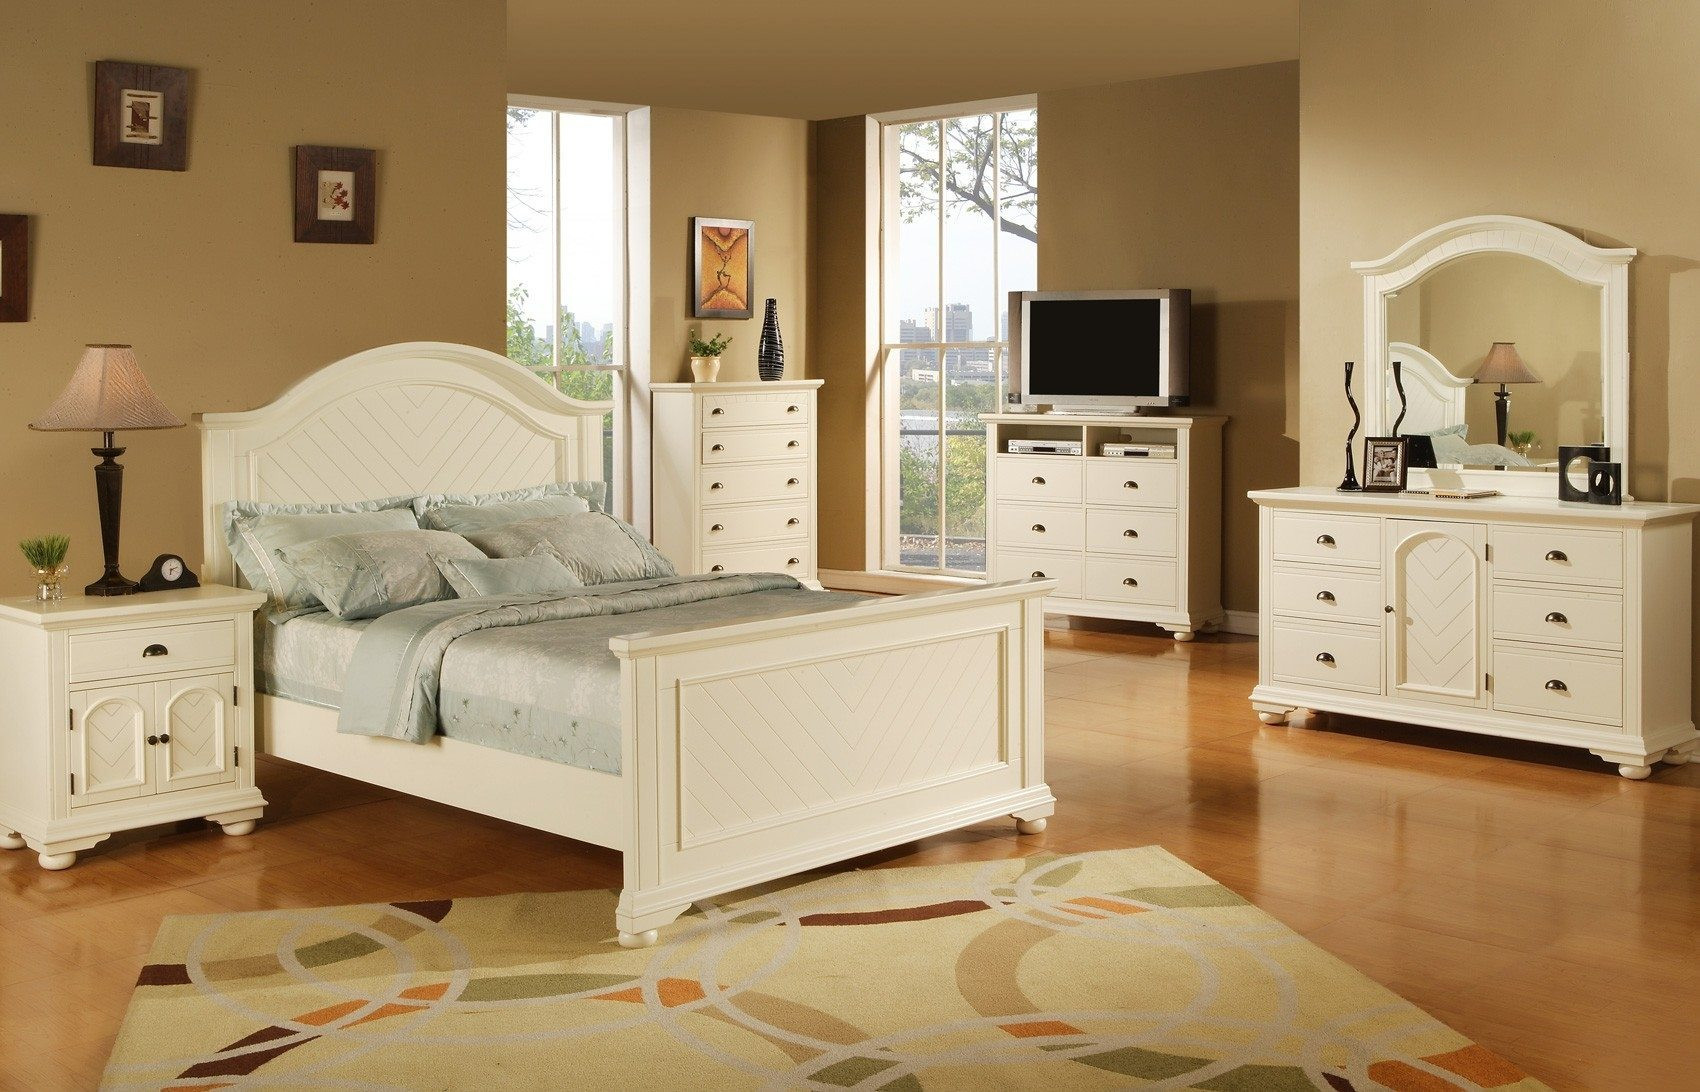 Best ideas about White Queen Bedroom Set . Save or Pin White Queen Bedroom Furniture Set Now.